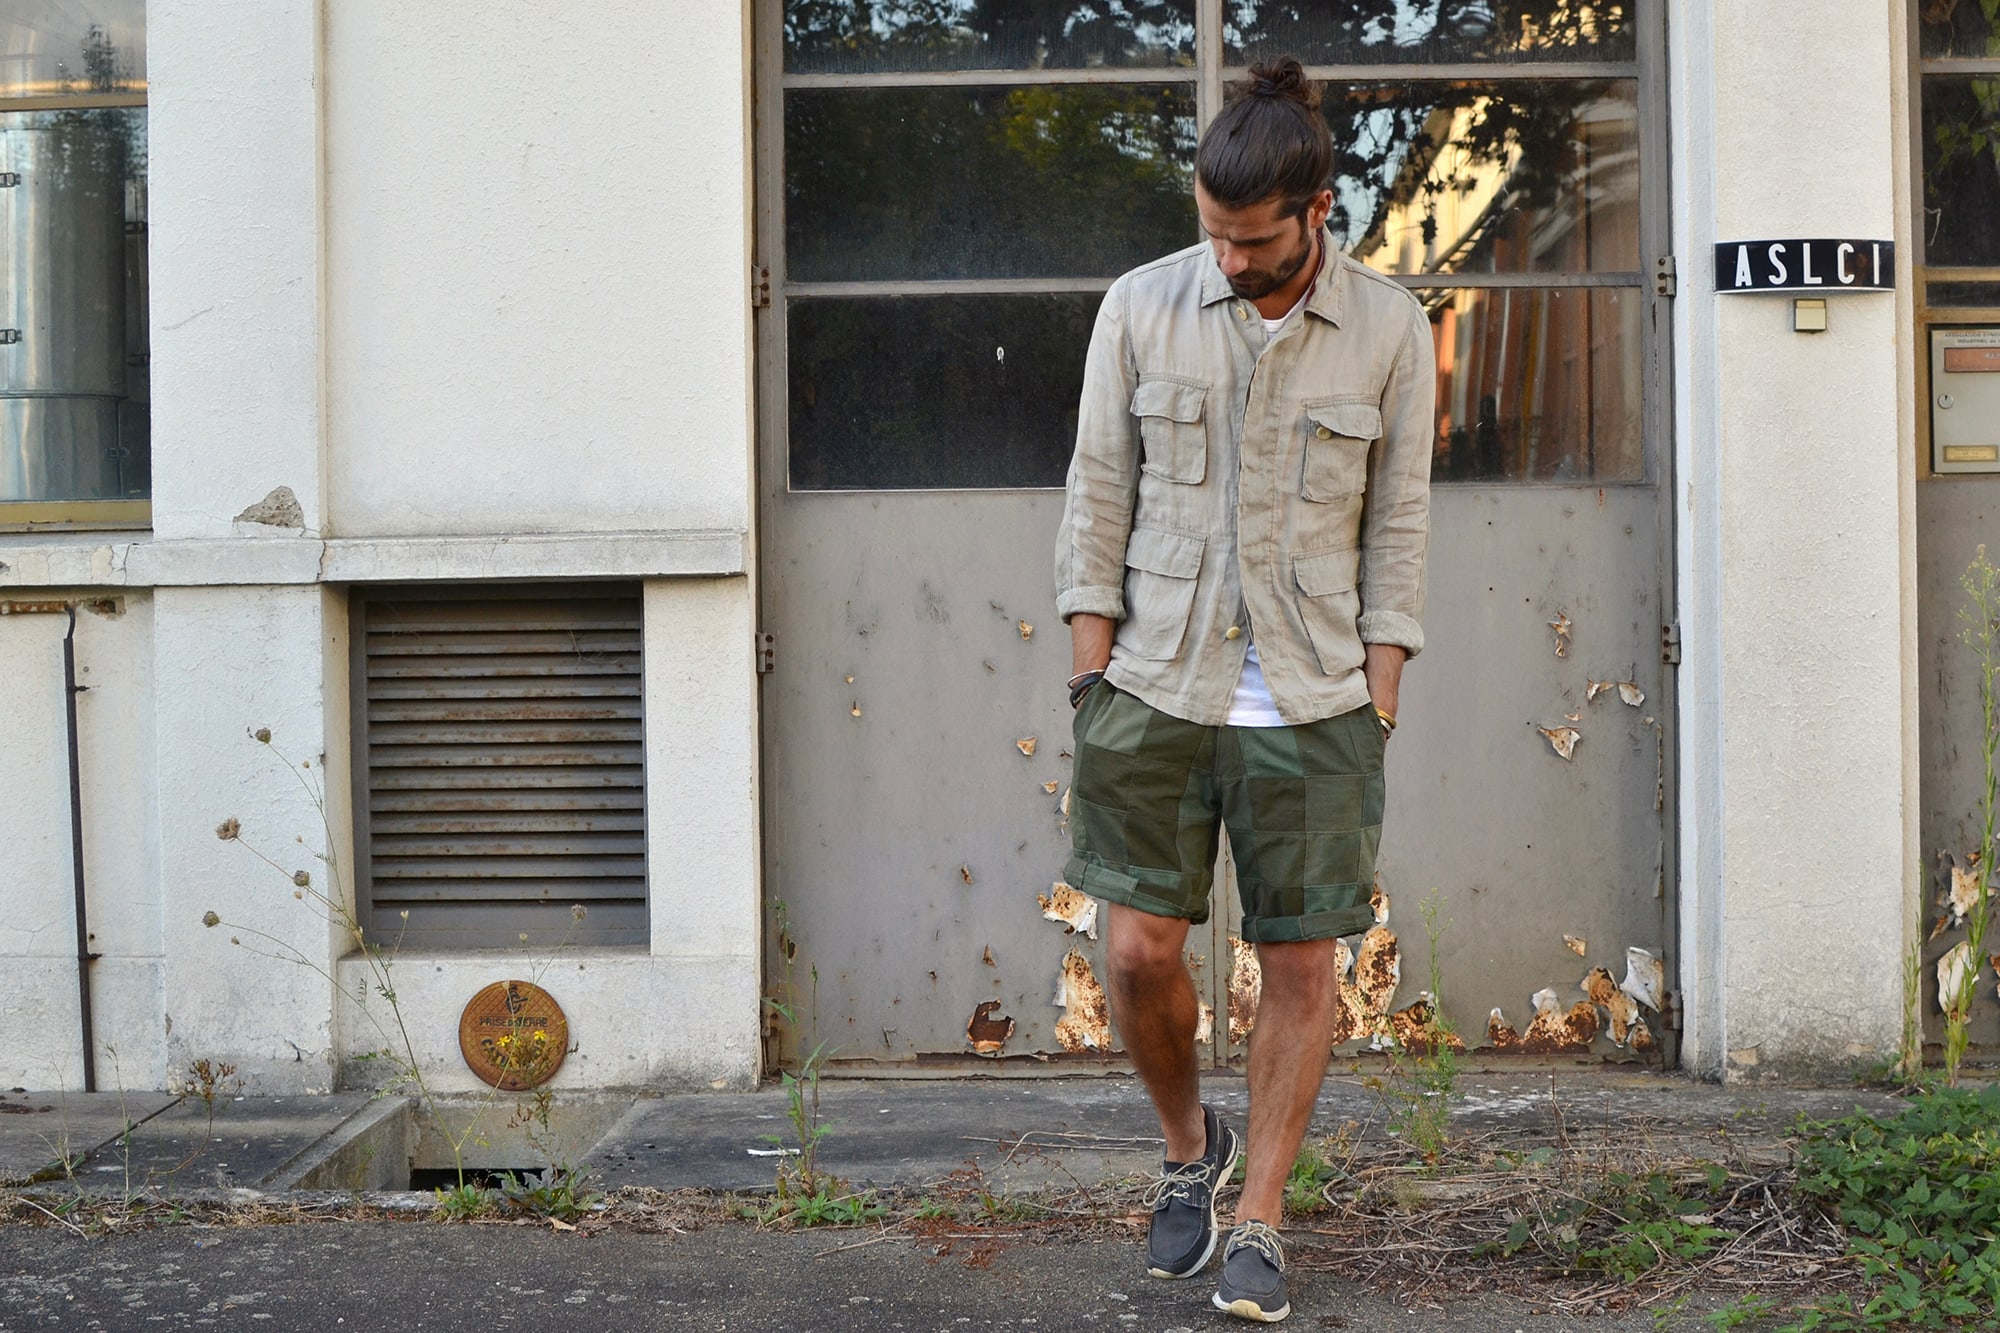 Visvim kilgore linen jacket and hockney shoes - Jinji bandana necklace - tap tee- Overlord Brand olive patchwork short - Converse CT70 all star sneakers